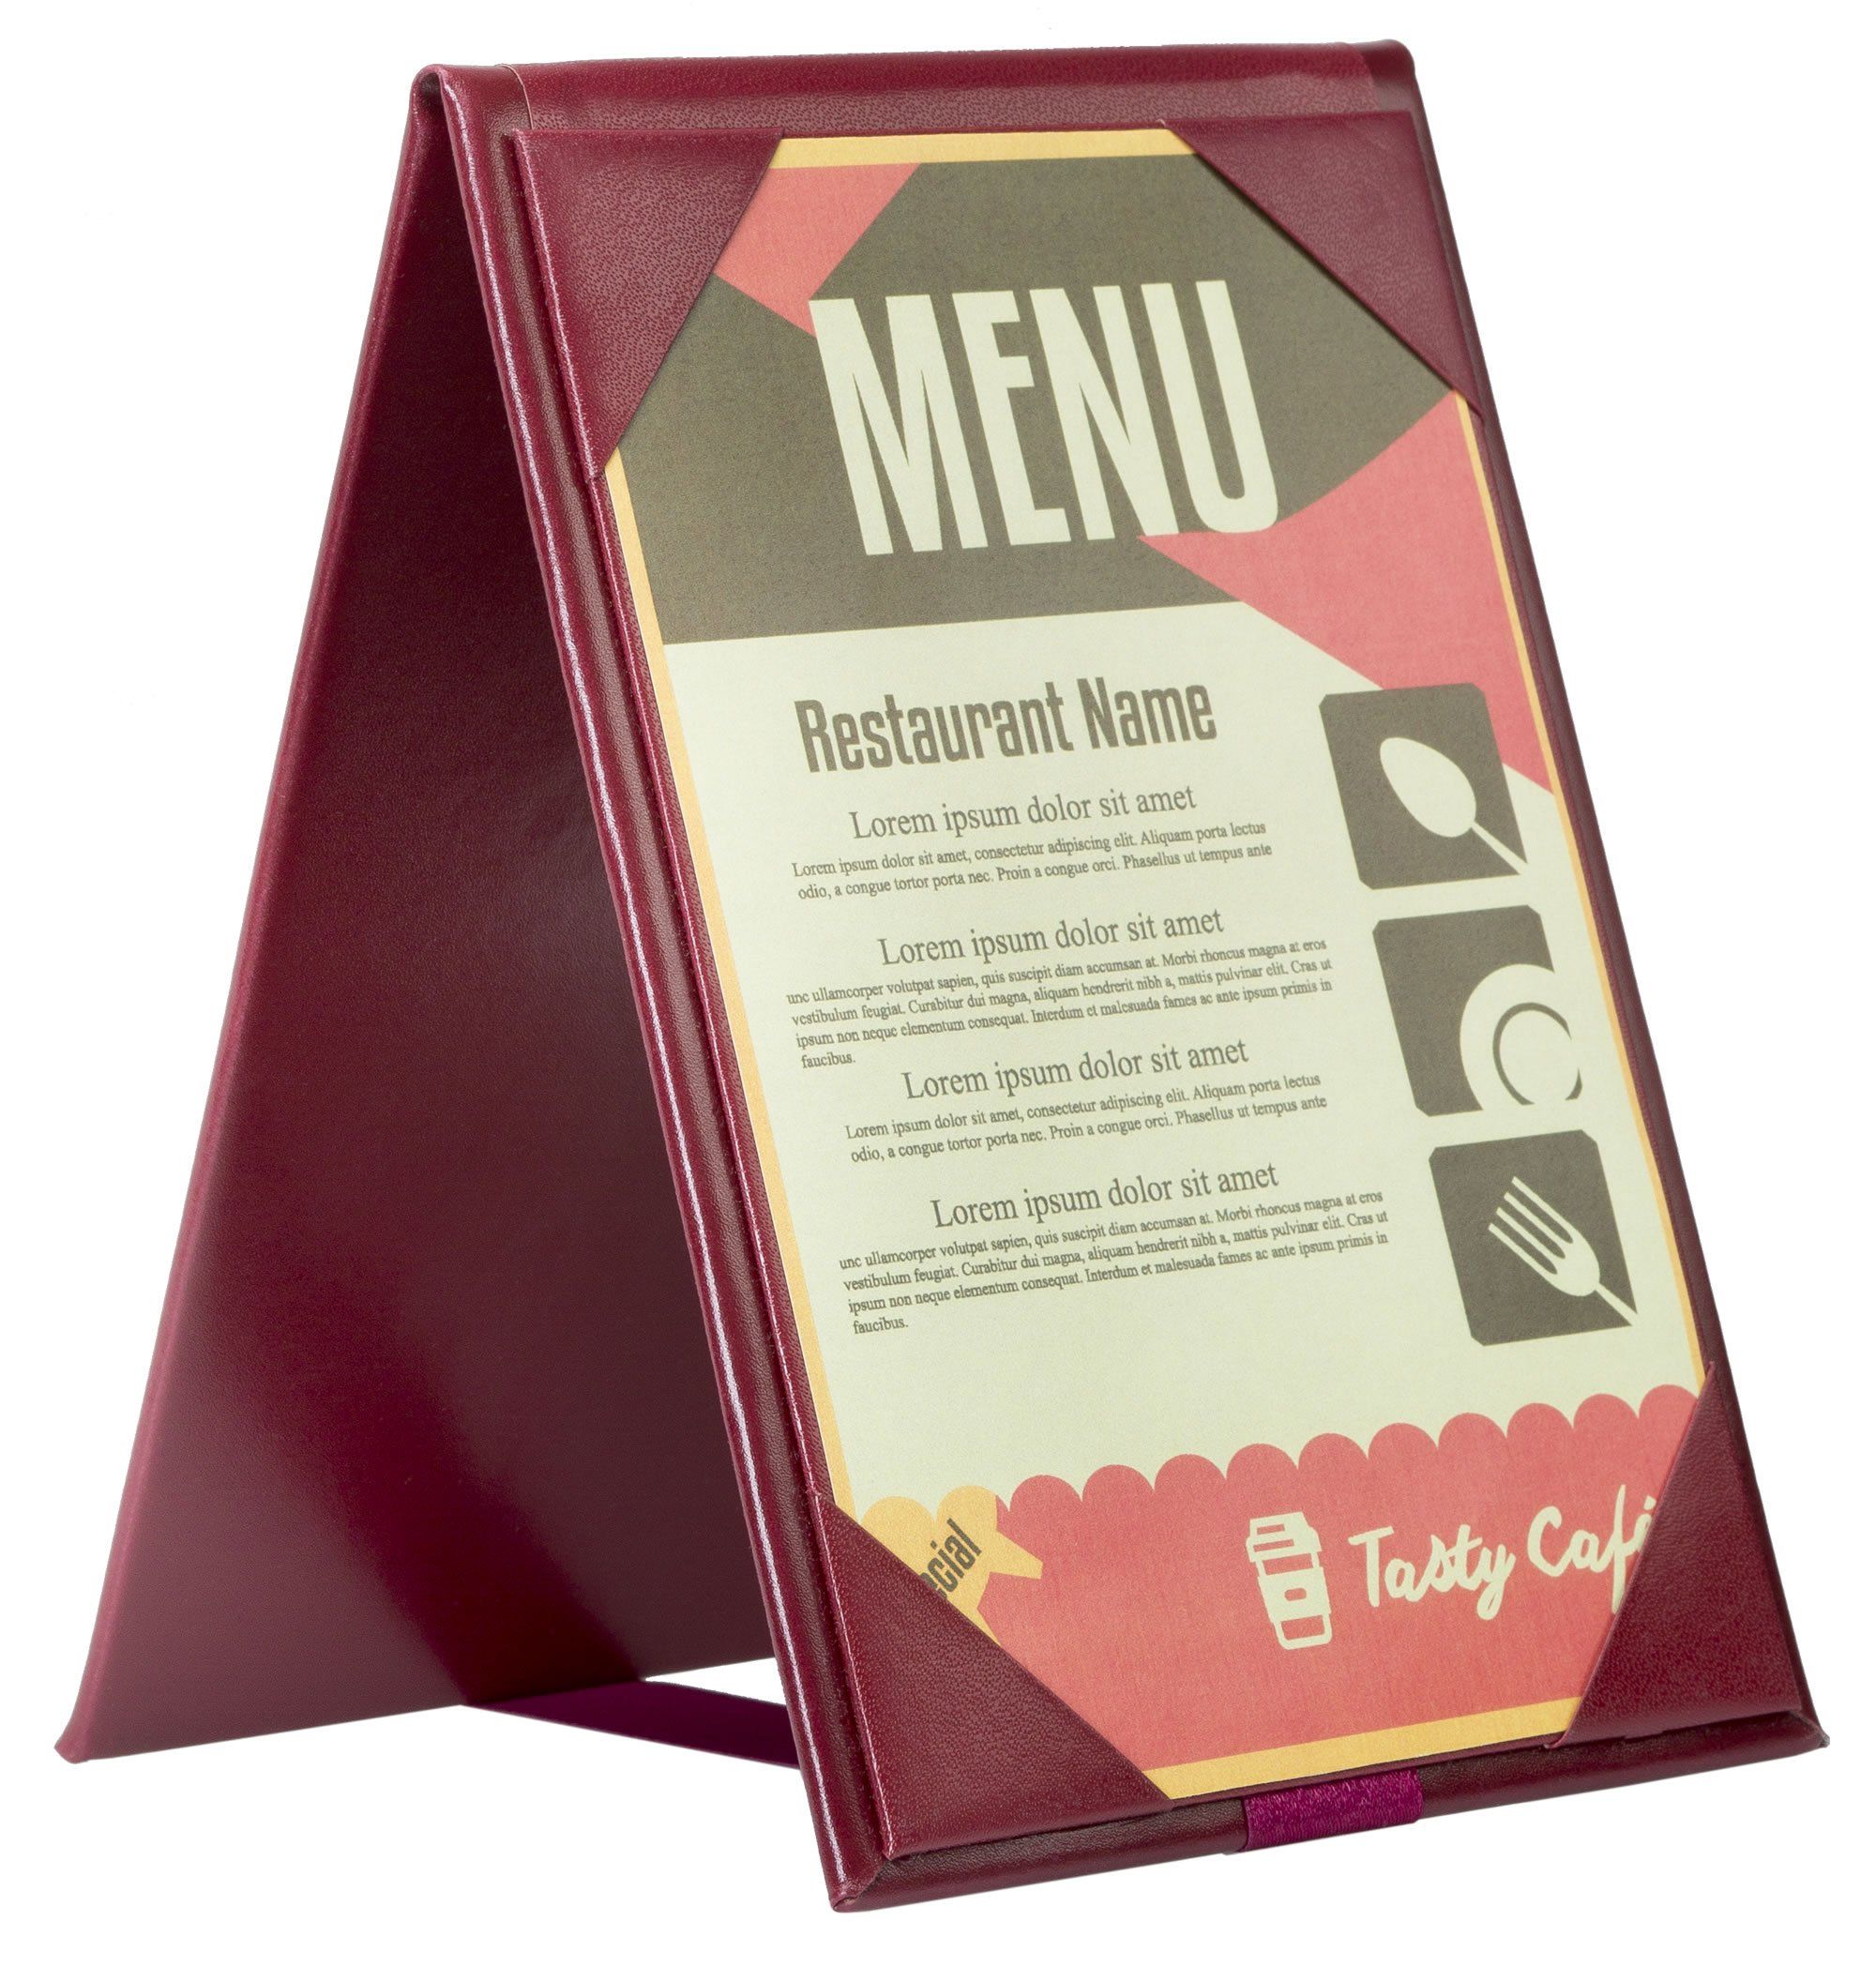 Pack of 10 • Better Quality Restaurant Table Tents #0207 BURGUNDY DOUBLE SIDED - TWO-VIEW - 5'' x 7'' Insert. Talk to your patrons throughout their meal. SEE MORE: Type MenuCoverMan in Amazon search.